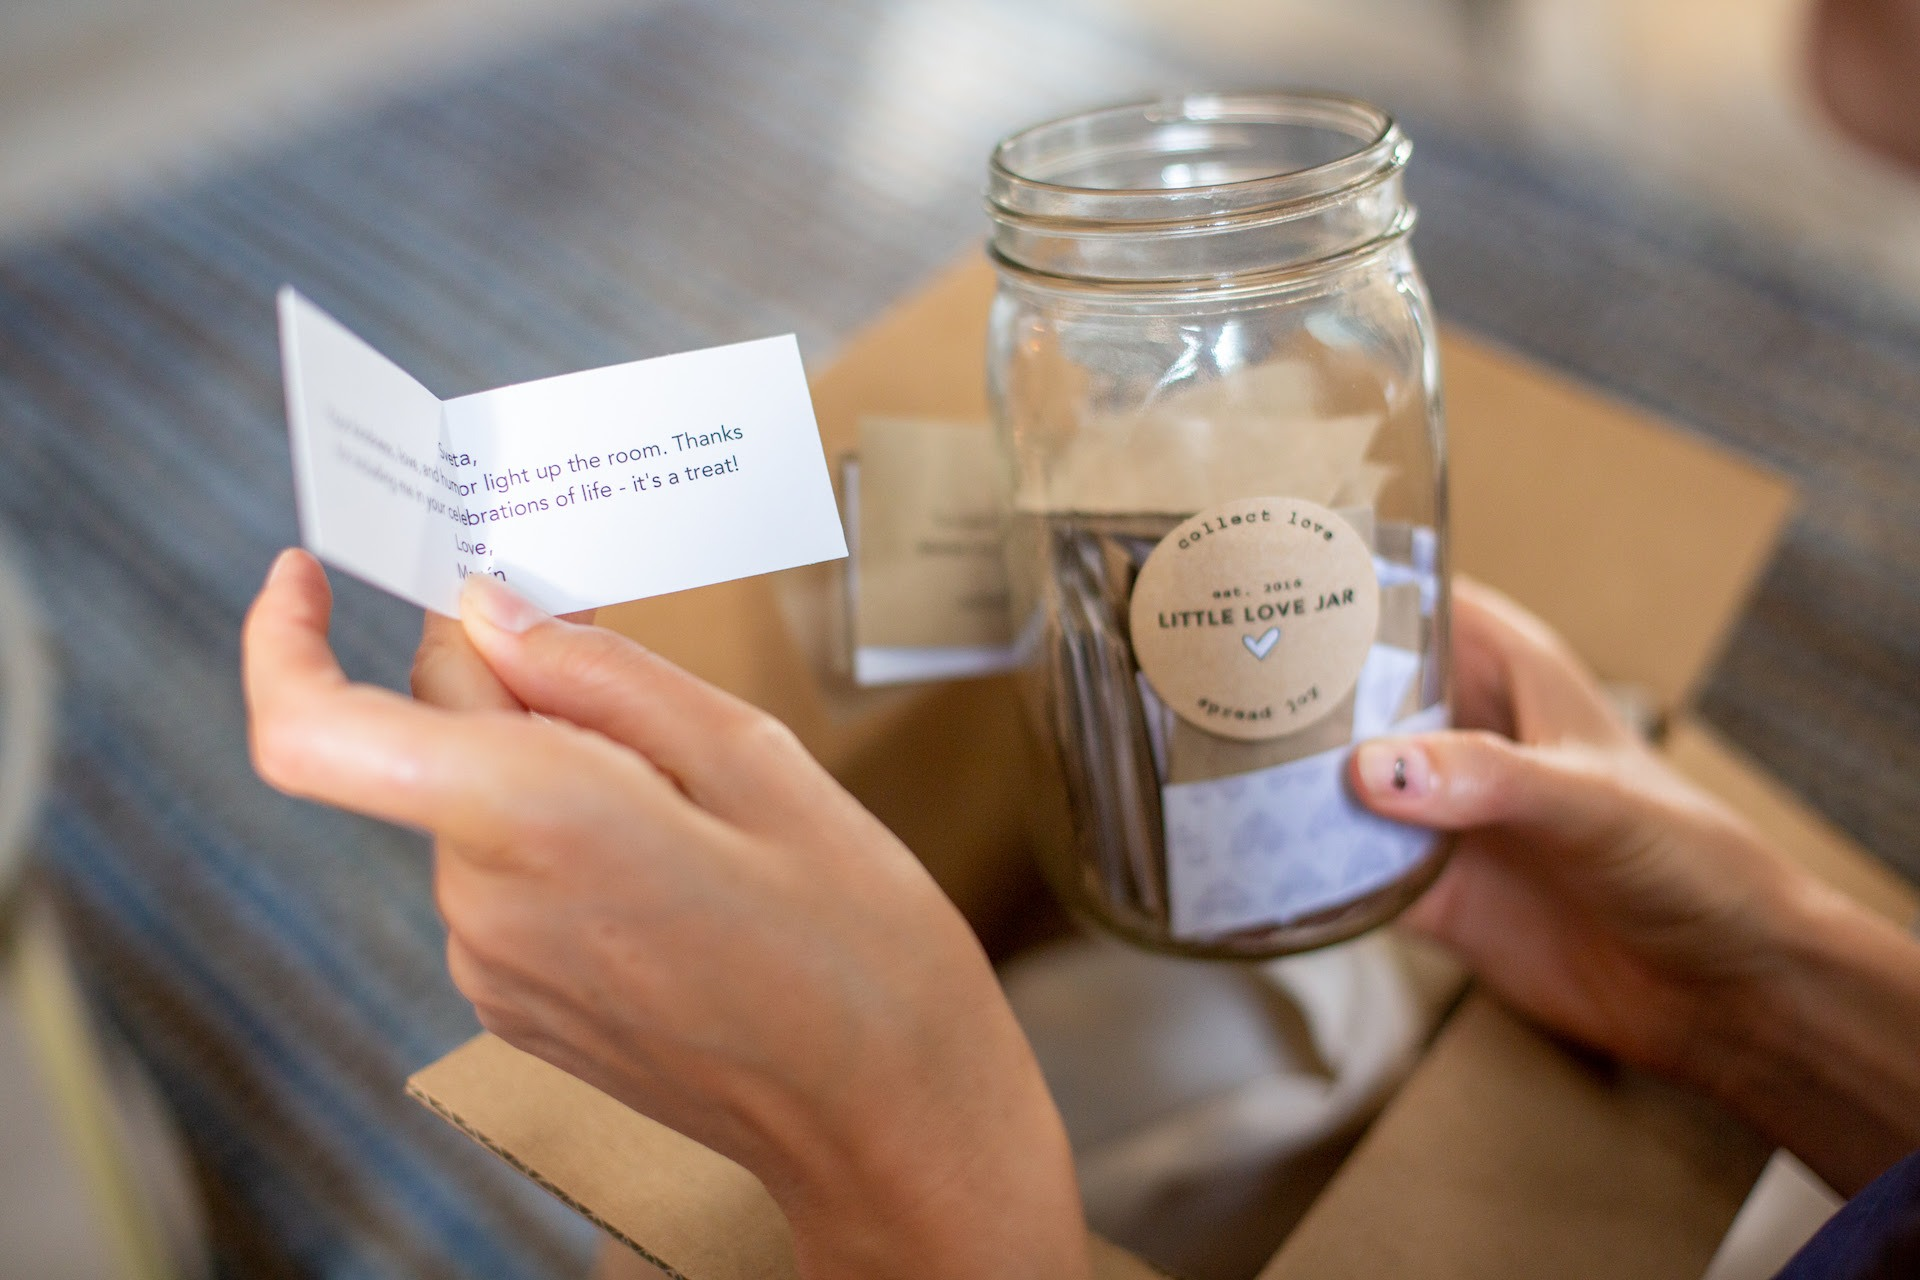 Little Love Jar: The Gift That Gives Back